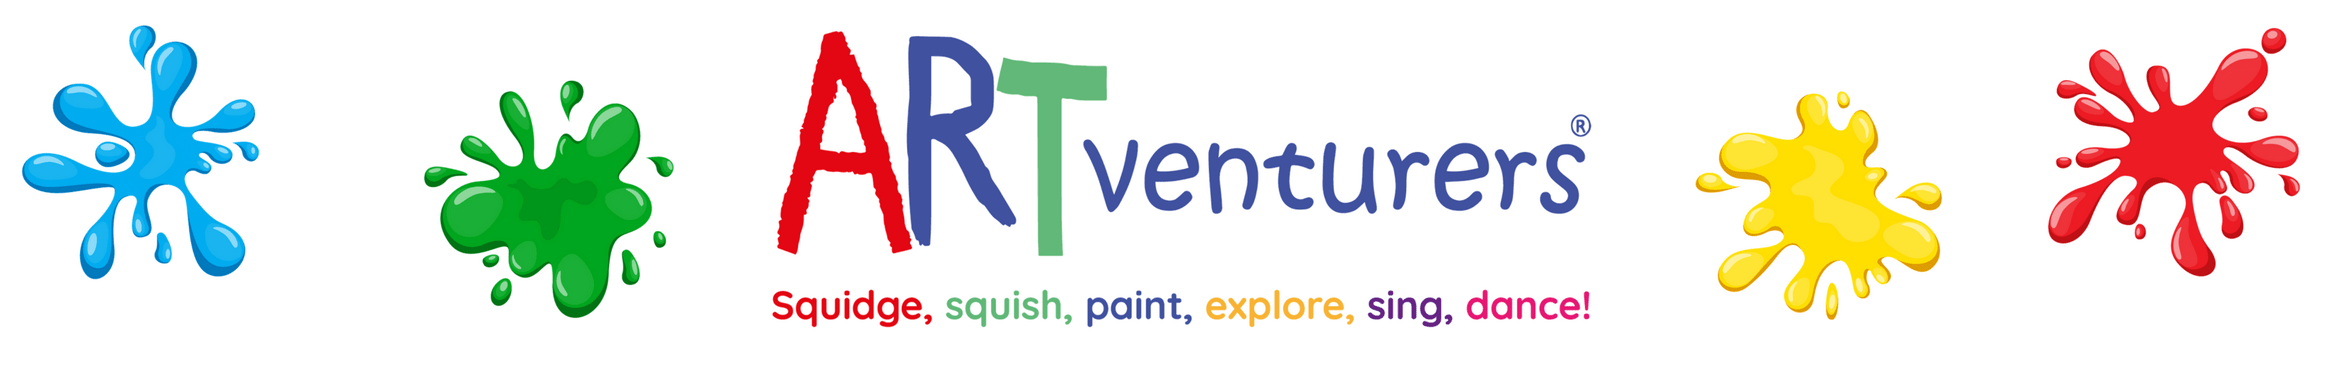 ARTventurers South Leeds